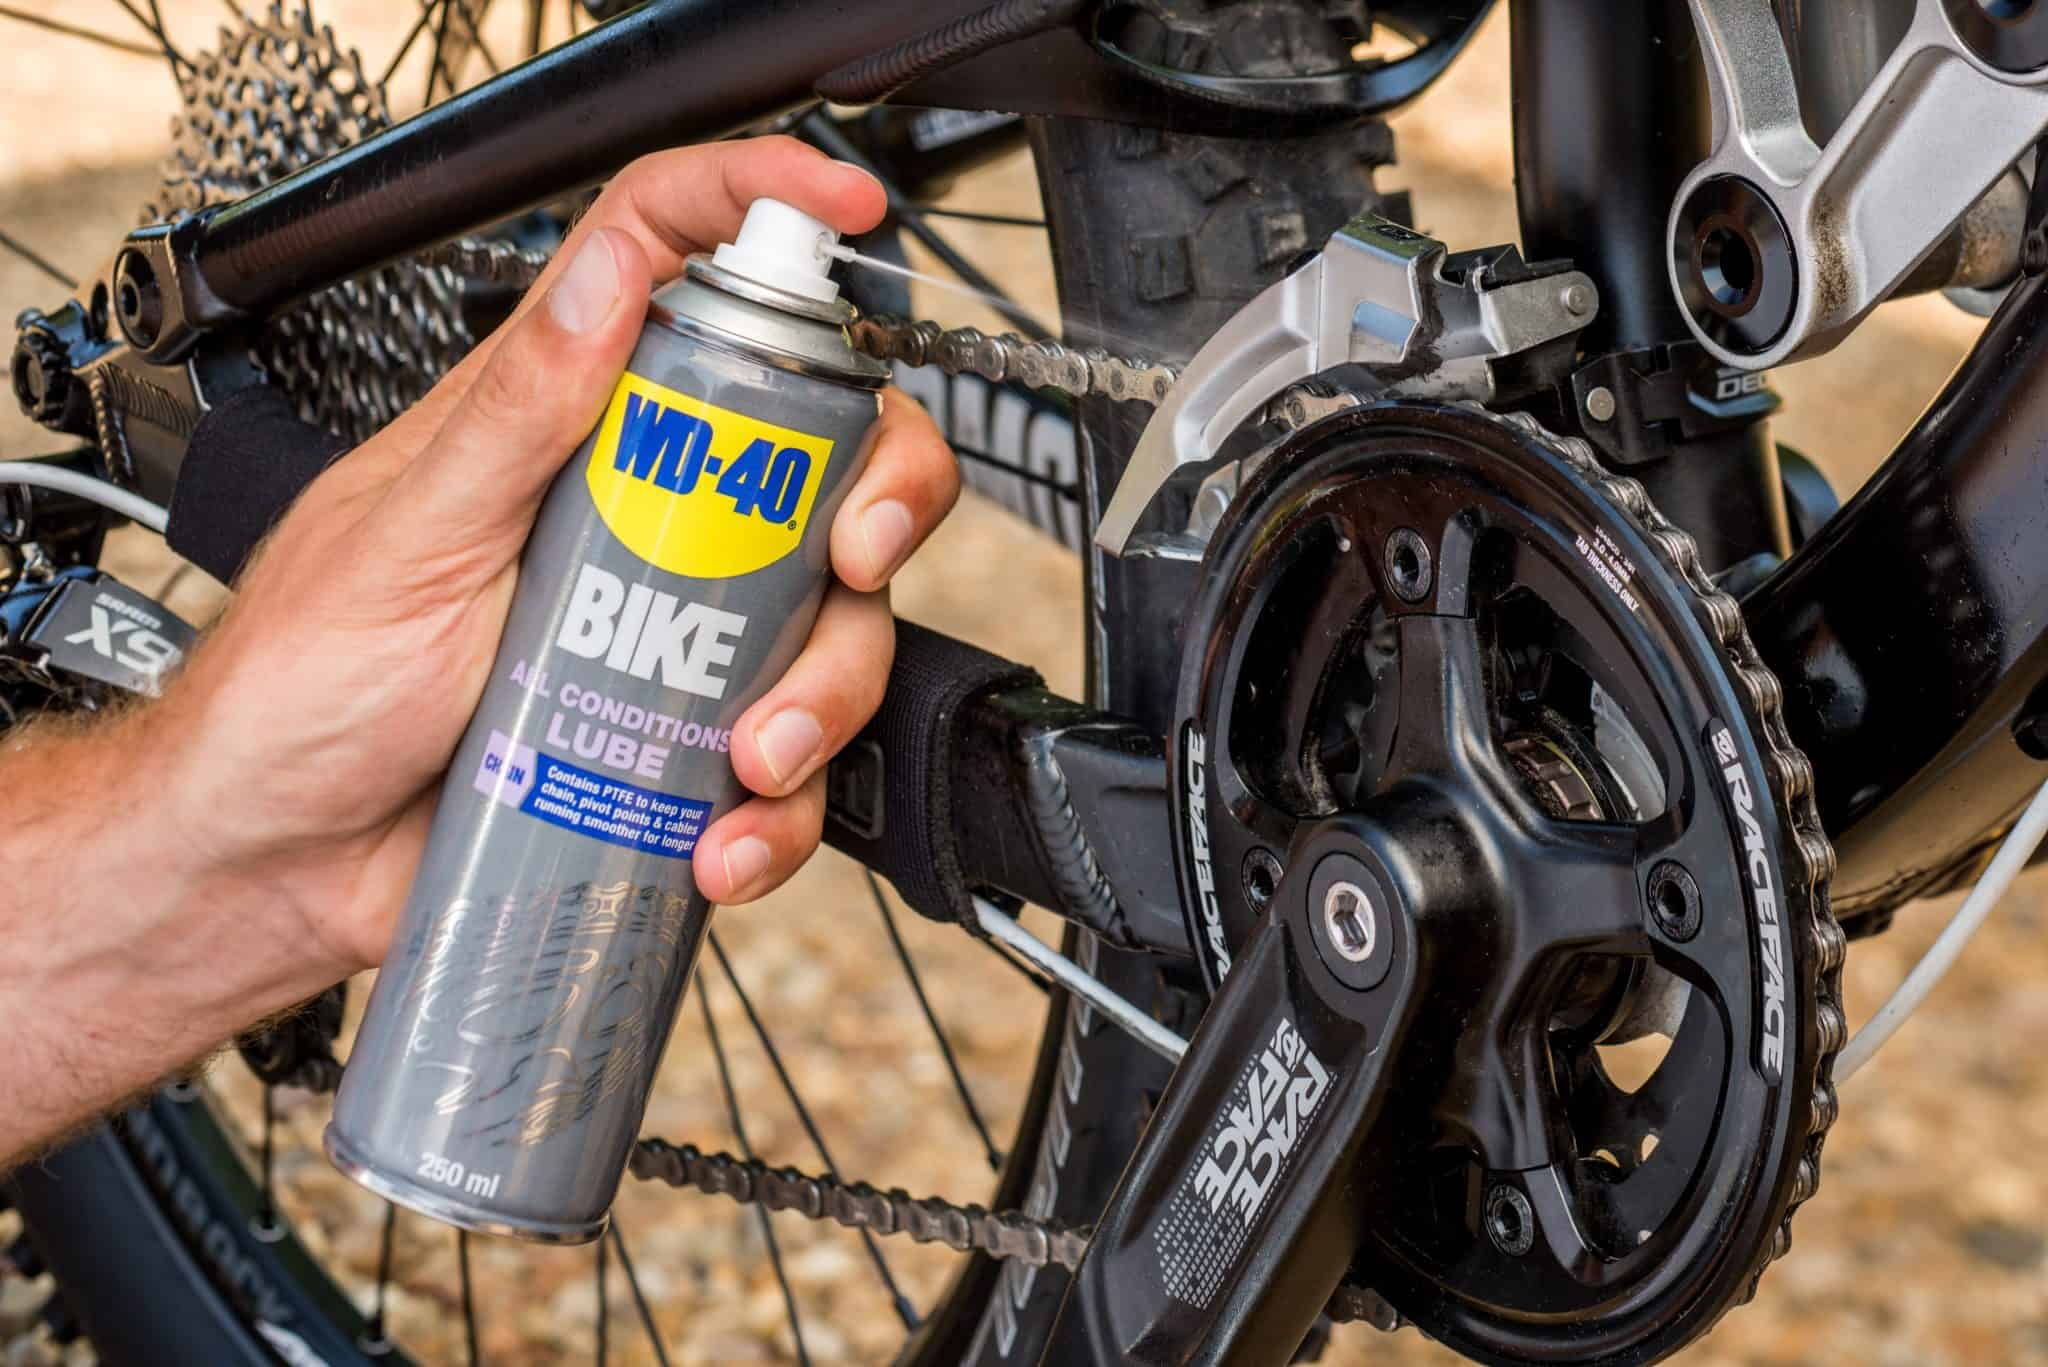 WD40 All Conditions Lube